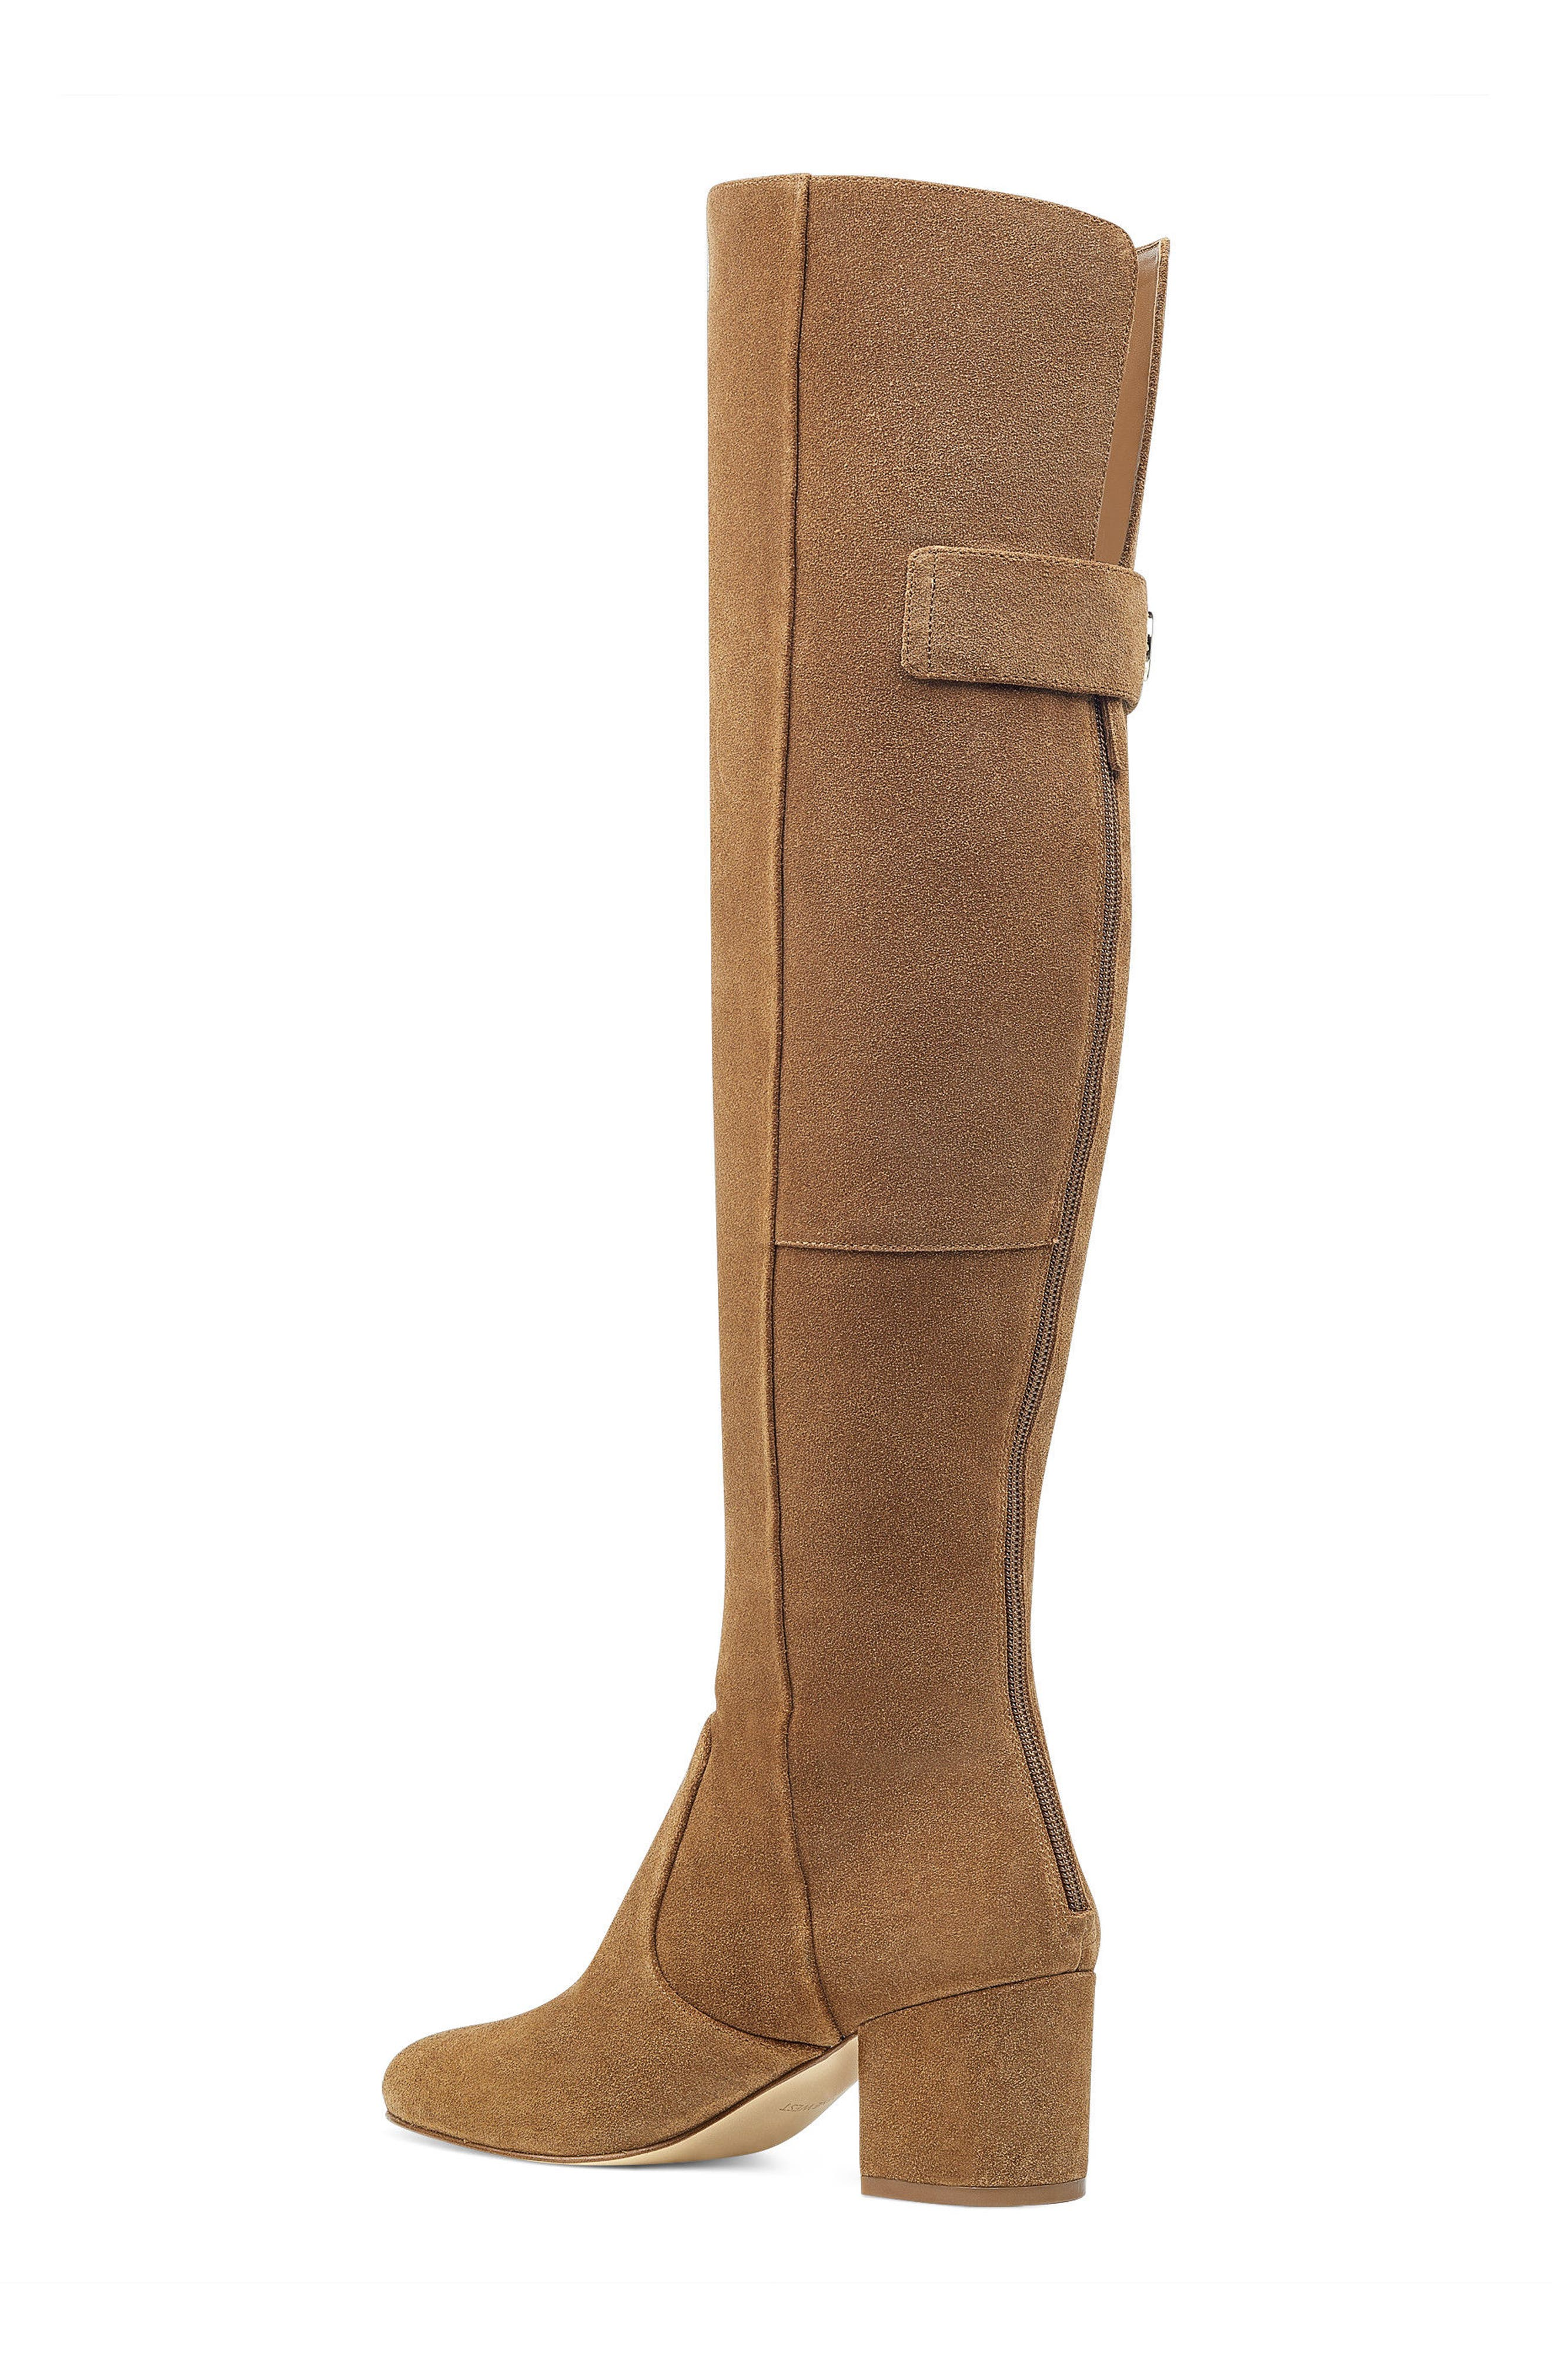 Queddy Over the Knee Boot,                             Alternate thumbnail 4, color,